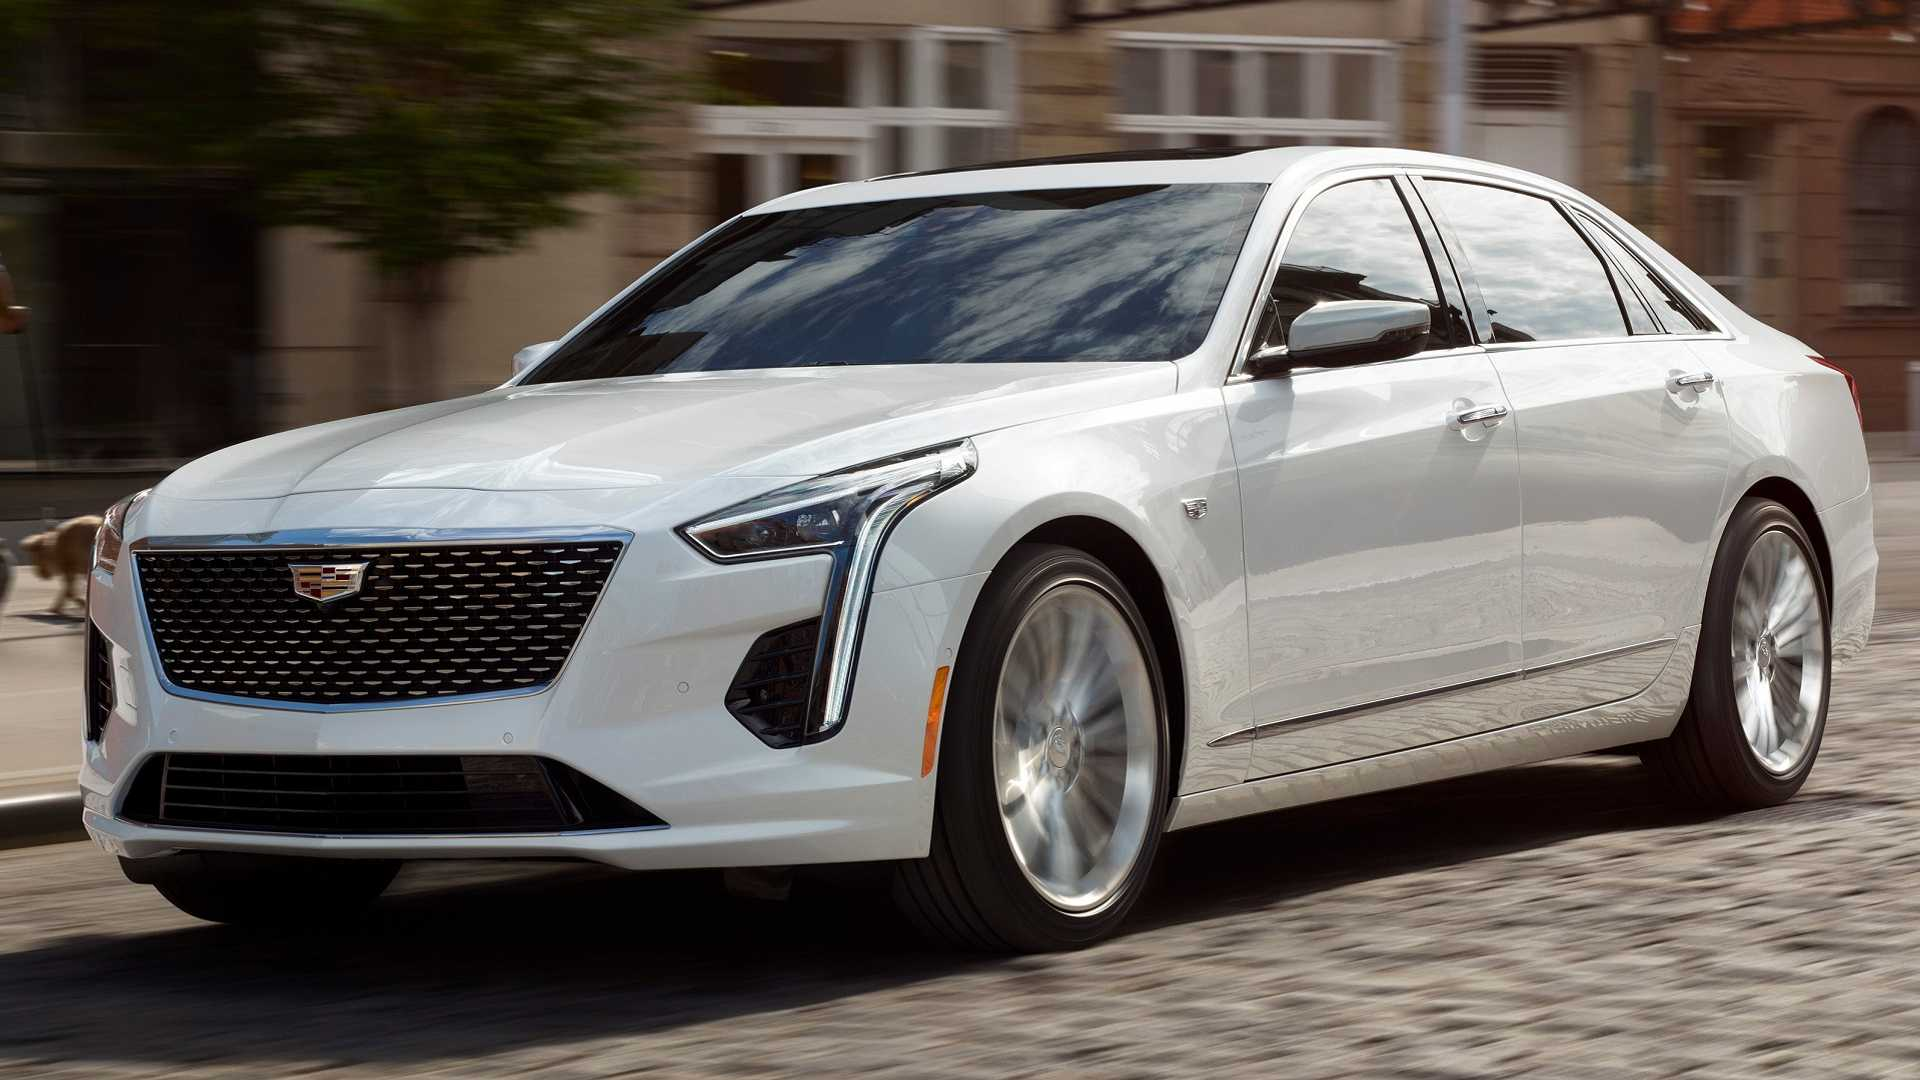 66 All New 2020 Cadillac Ct6 V8 Exterior And Interior